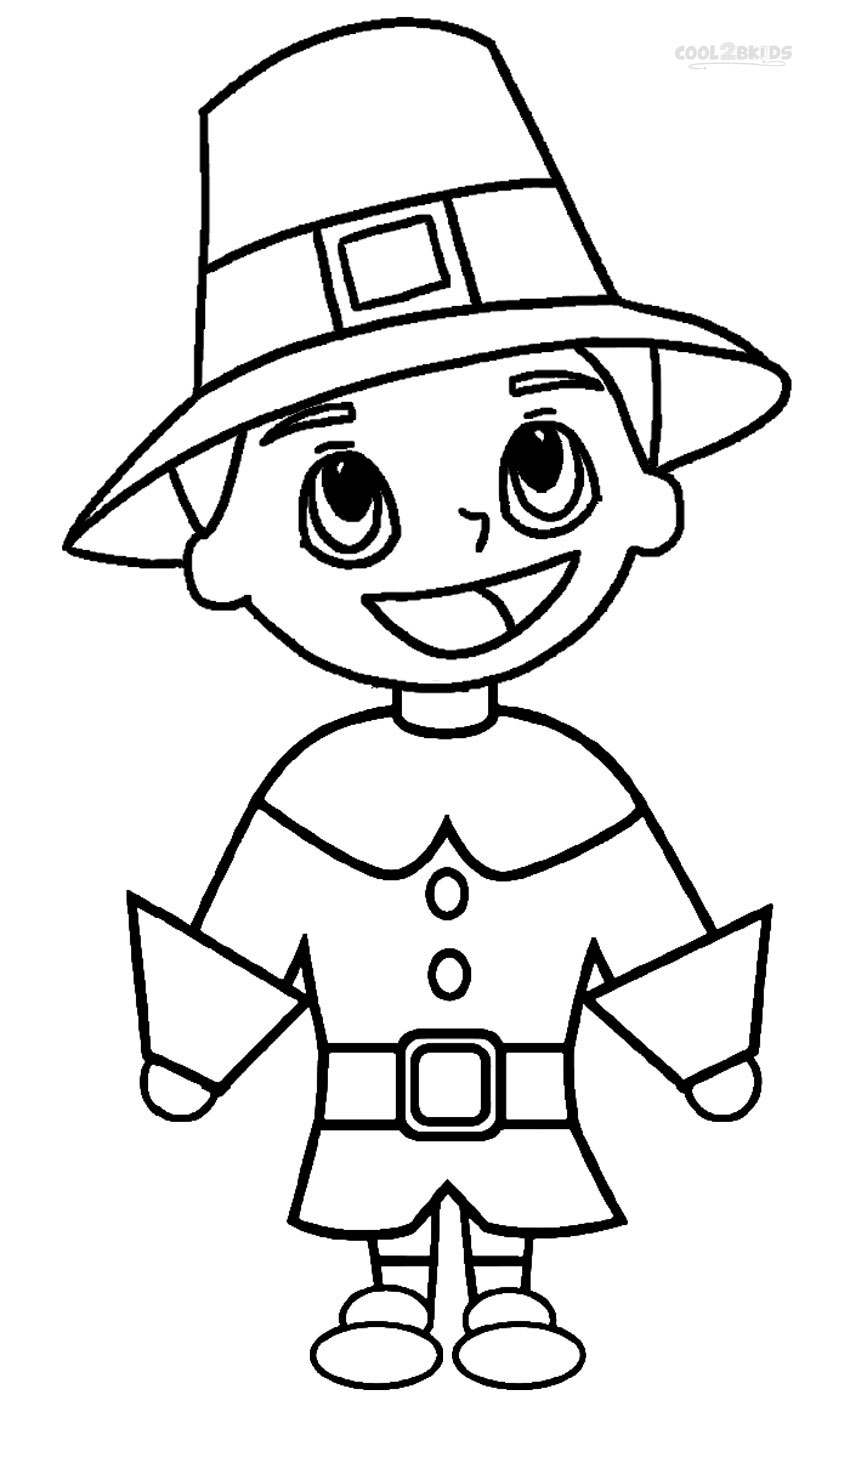 Pilgrim Indian Coloring Pages Printable Pilgrims Coloring Pages For Kids Cool2bkids